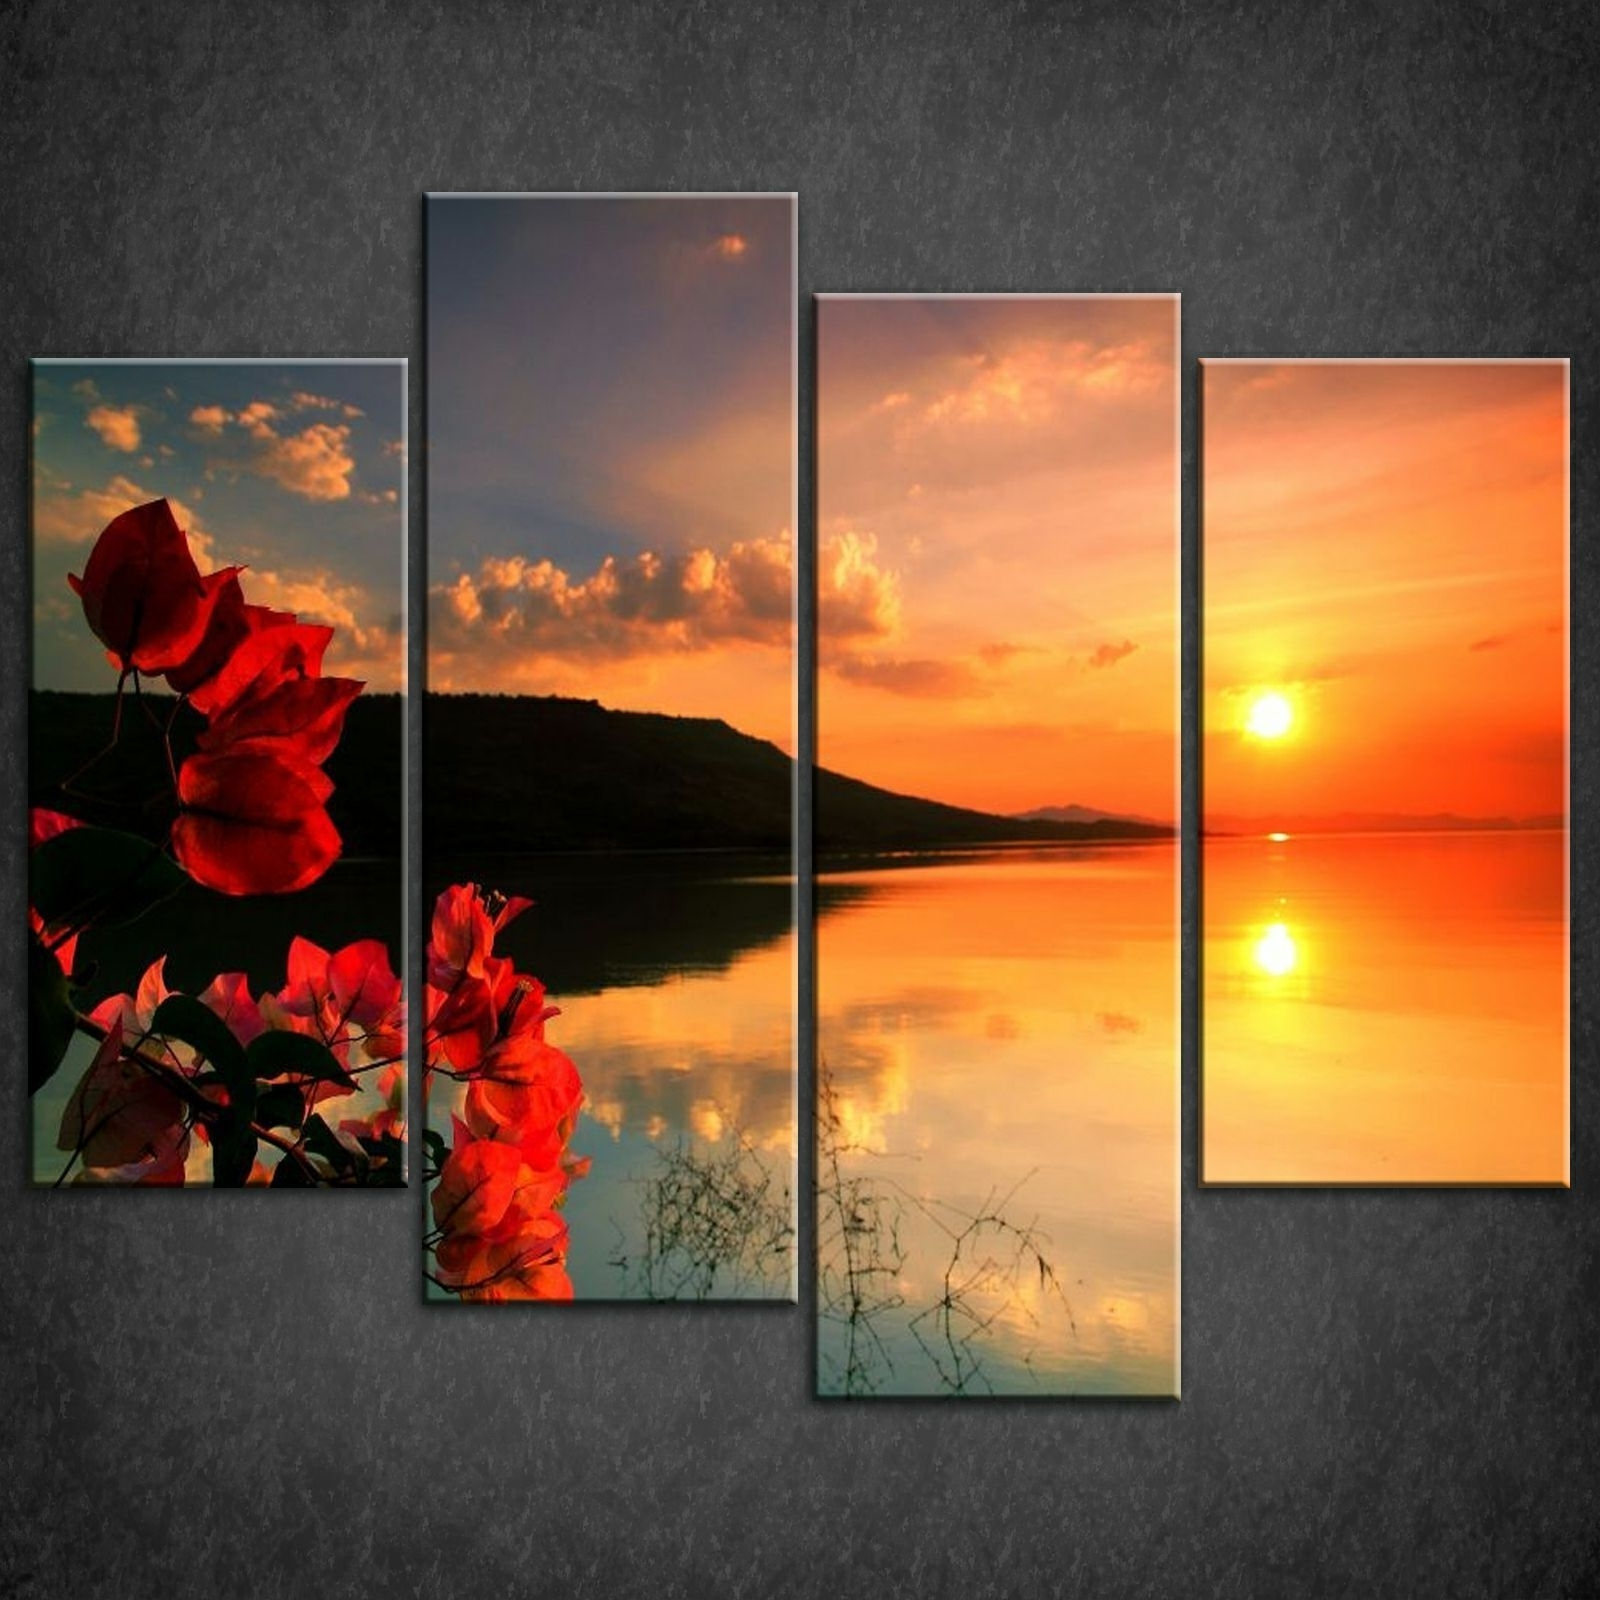 Red Calm Sunset Split Canvas Print Picture Wall Art Inside Widely Used Wall Art Canvas (View 8 of 15)